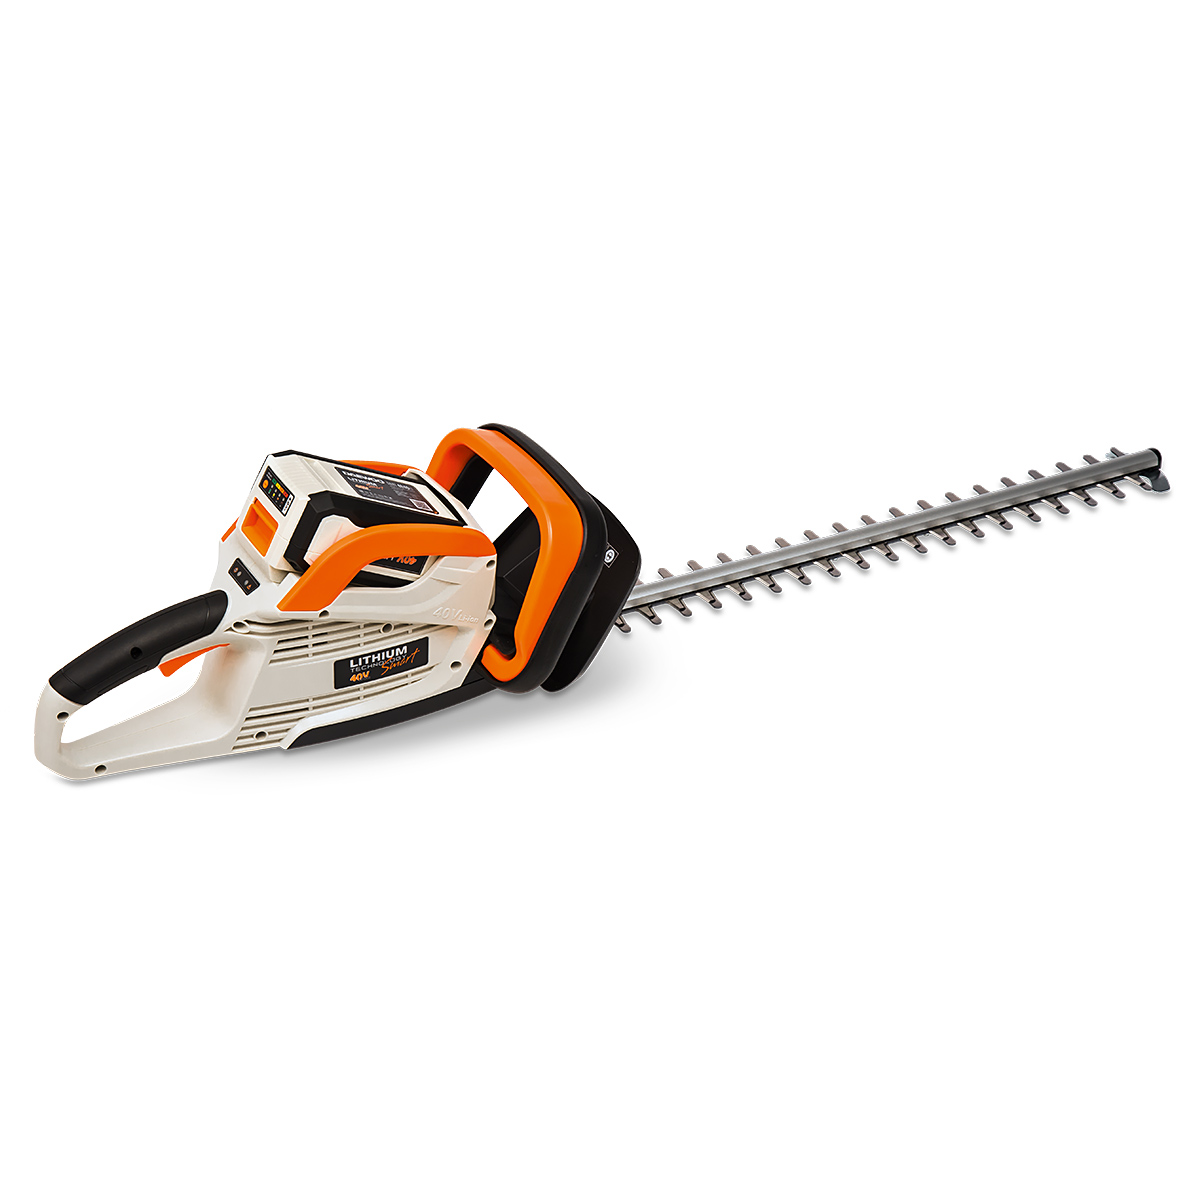 Battery Hedge Trimmer Daewoo DAHT 5540Li